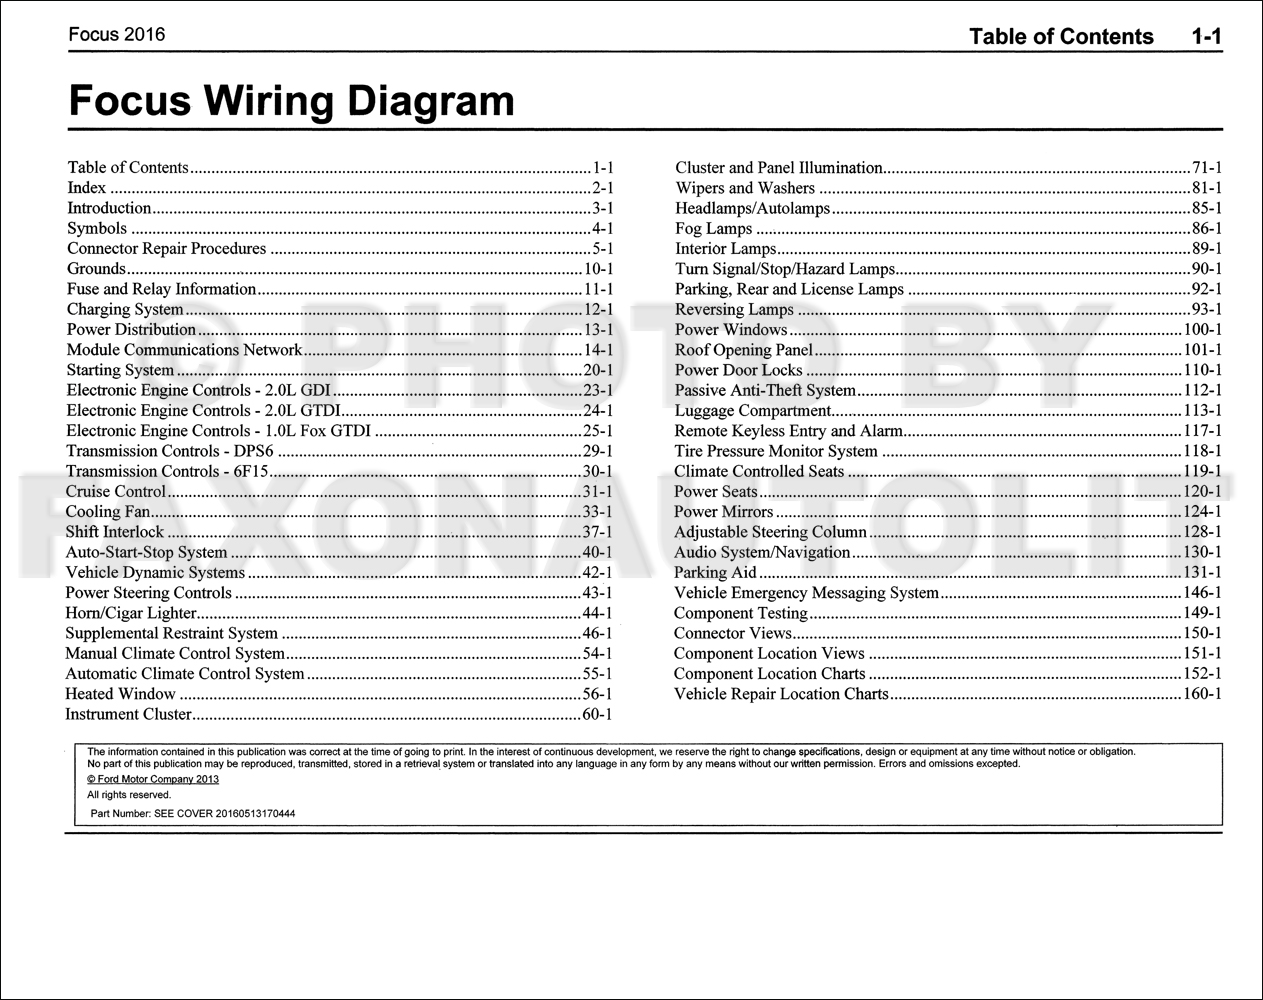 2009 Ford Focus Wiring Diagram